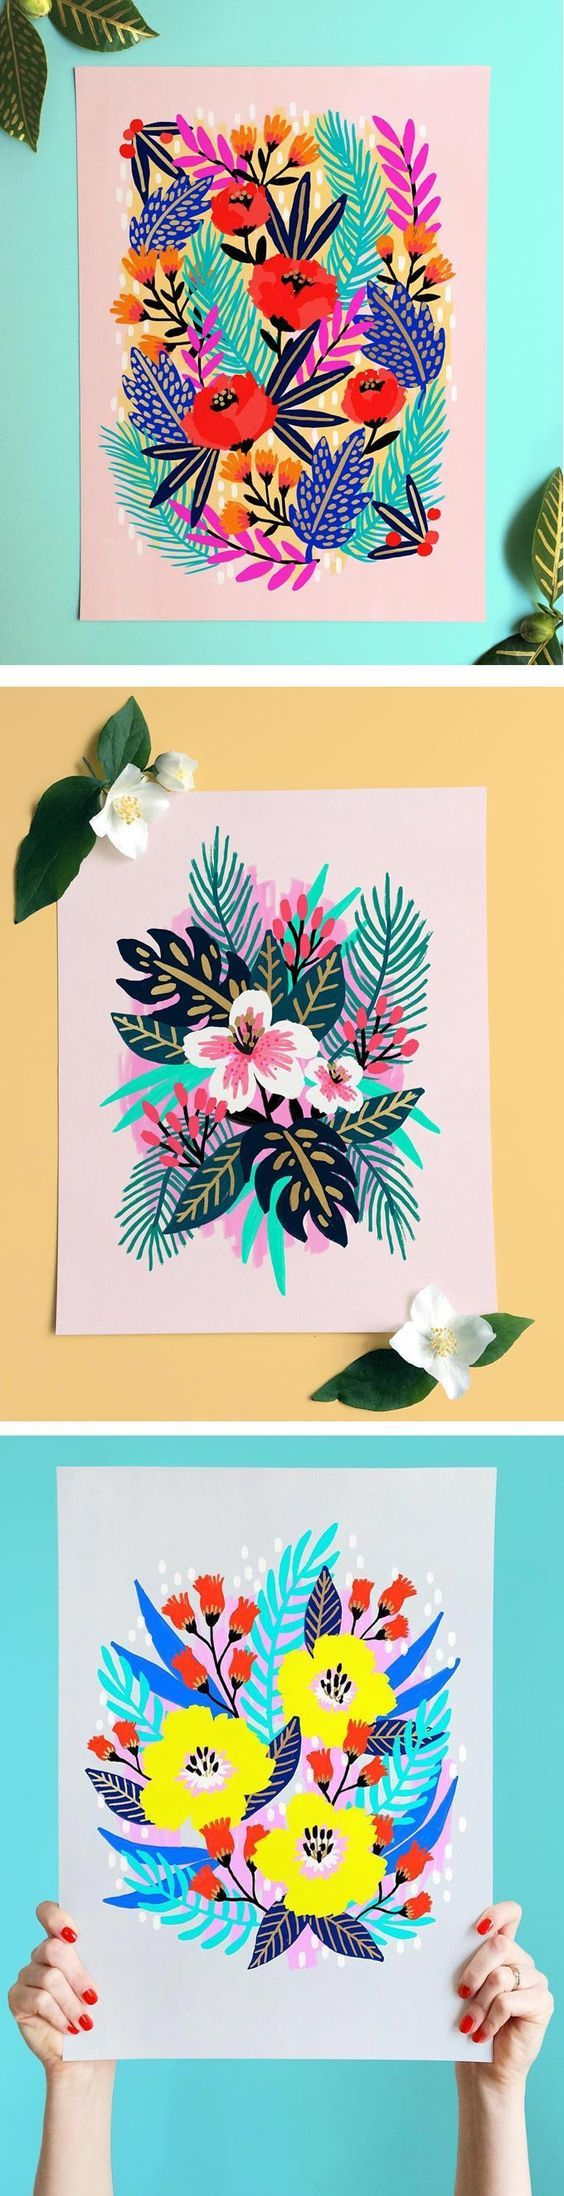 Jess Phoenix | Floral illustration | colorful flower illustration | blooms | illustrated flowers